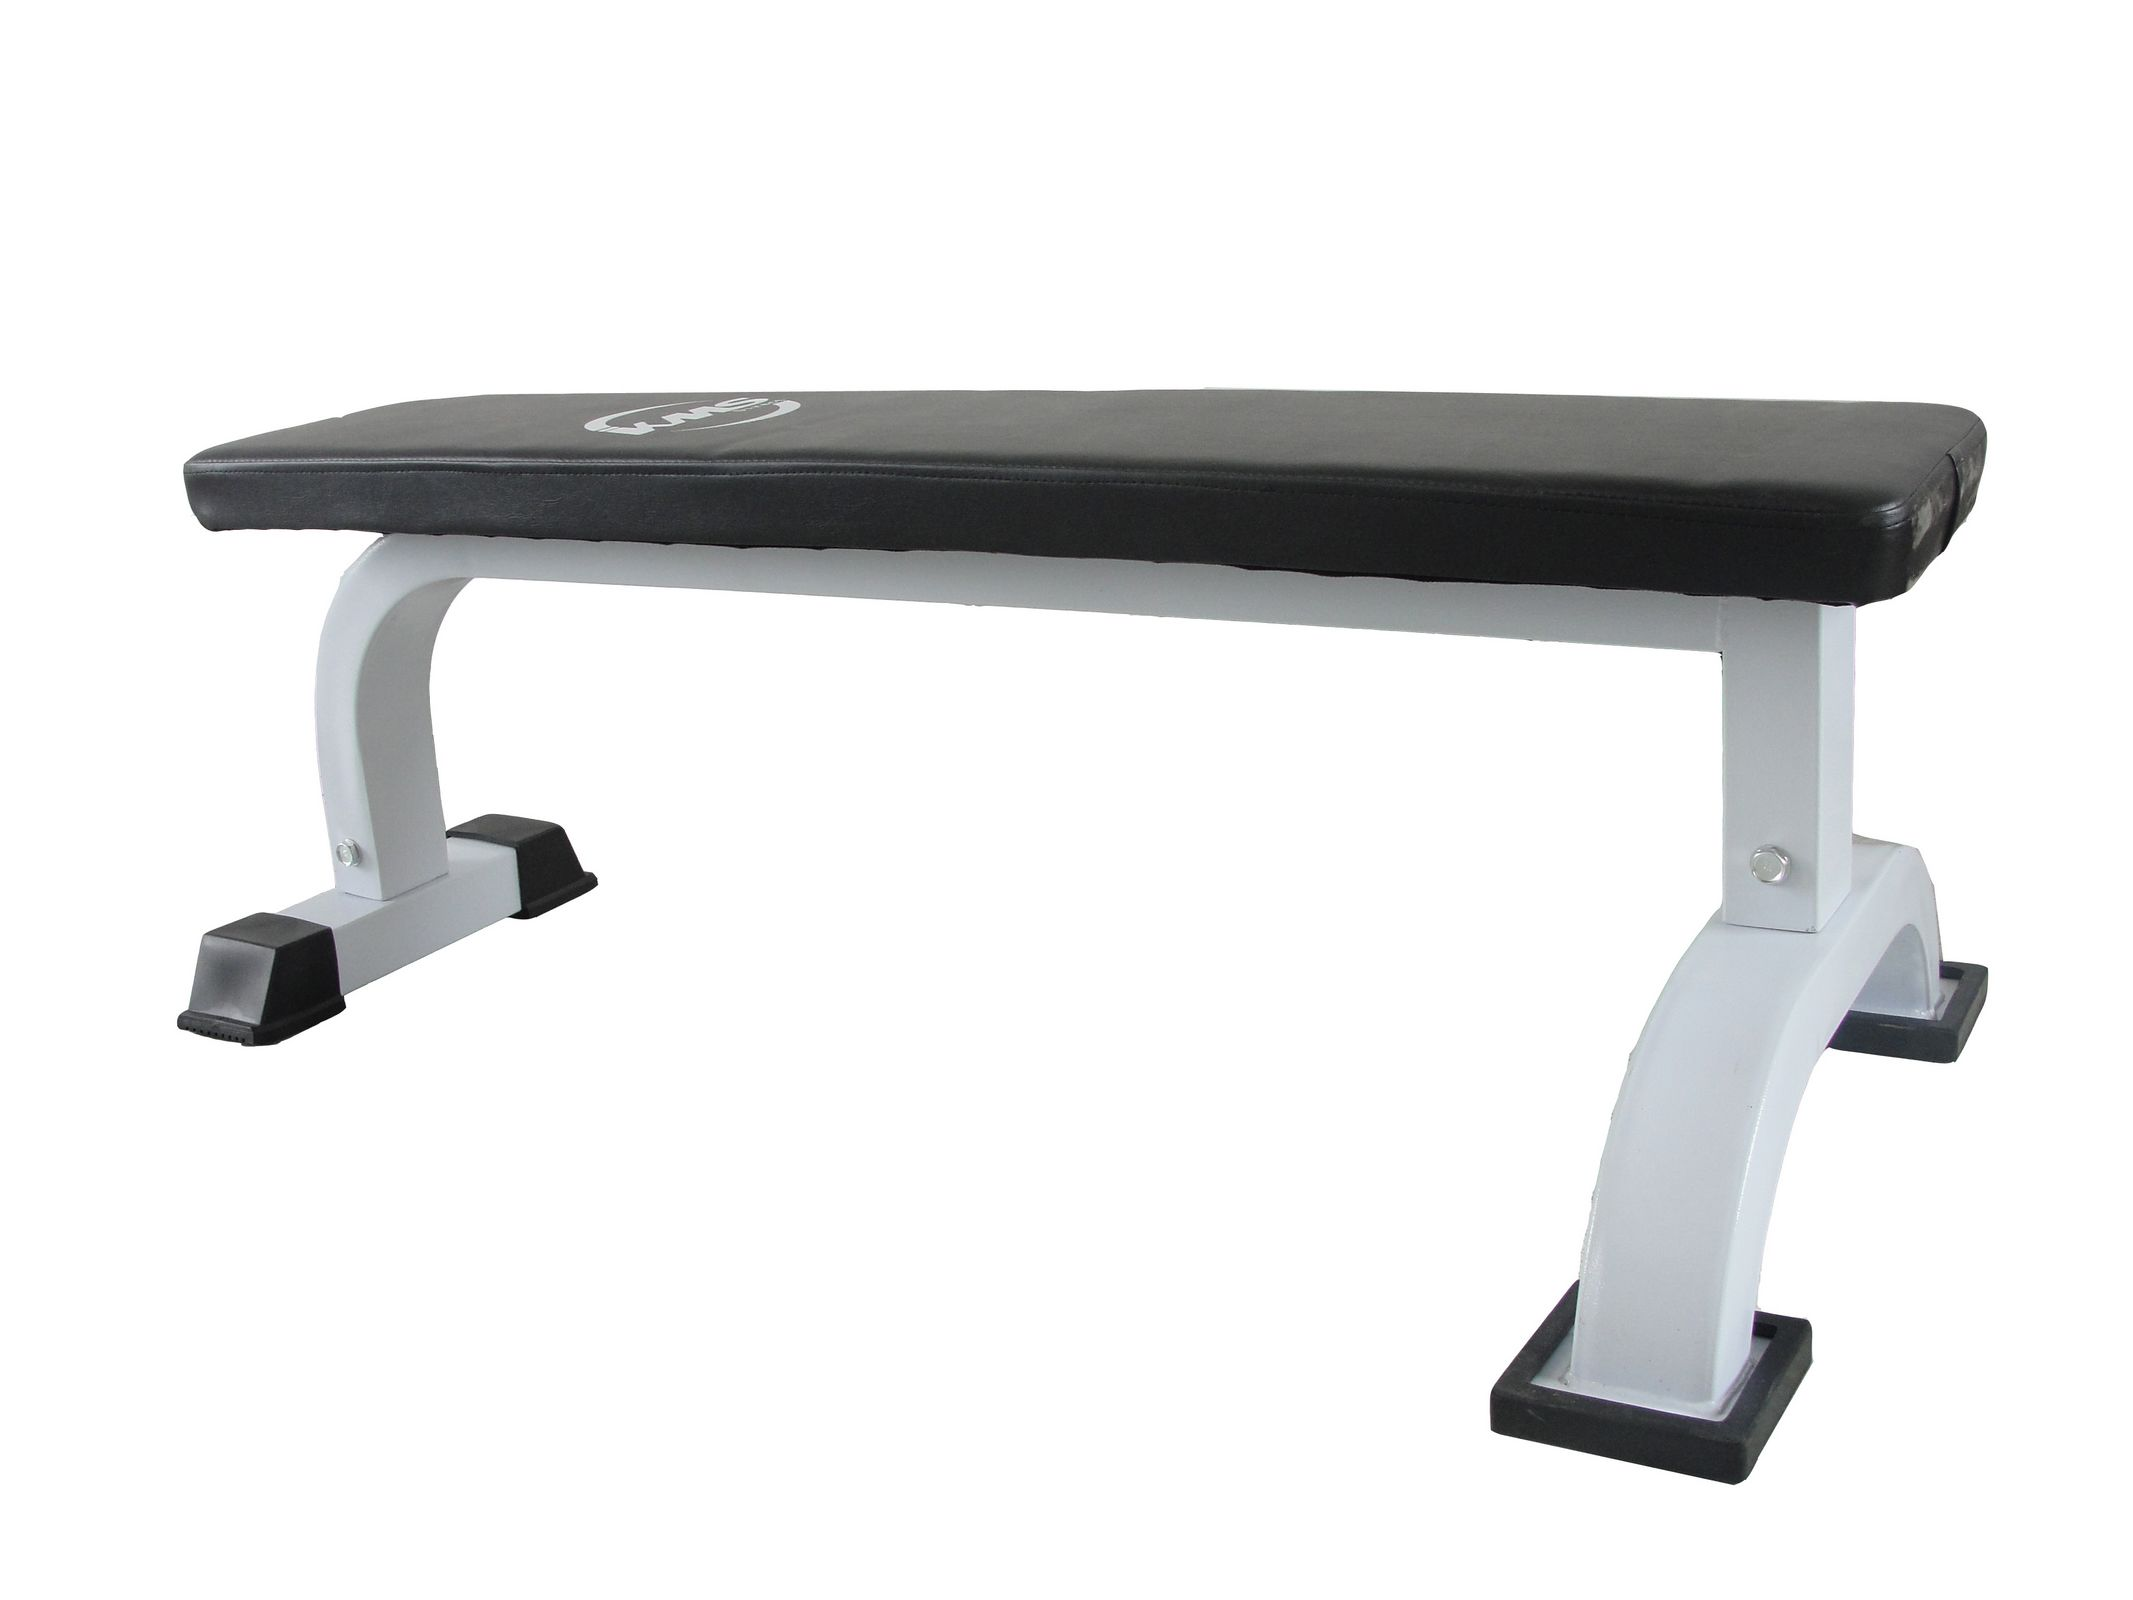 Bench Press Abs Part - 34: Sentinel Fitness Flat Bench Weight Lifting Utility Dumbbell Press Abs Home  Gym Workout